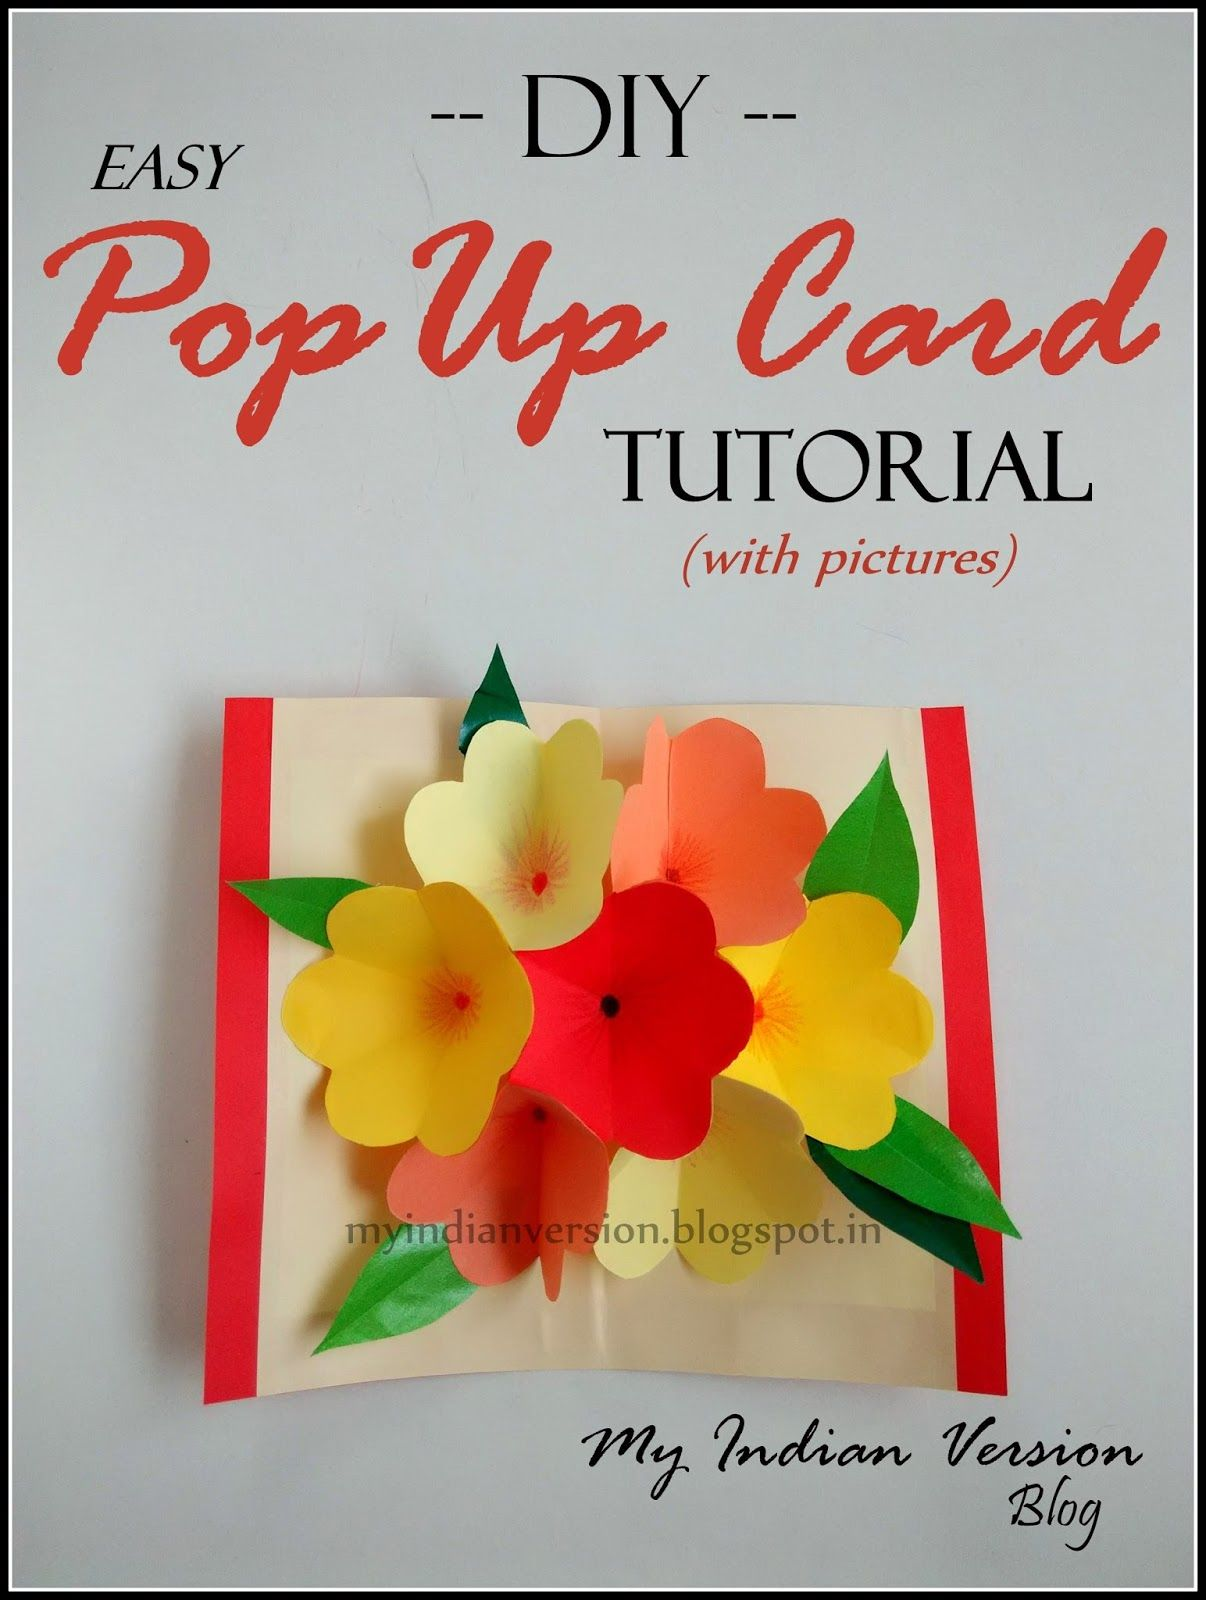 Cute and creative pop up cards to make tutorials cards and easy see how to make a flower pop up greeting card with picture tutorial kristyandbryce Images